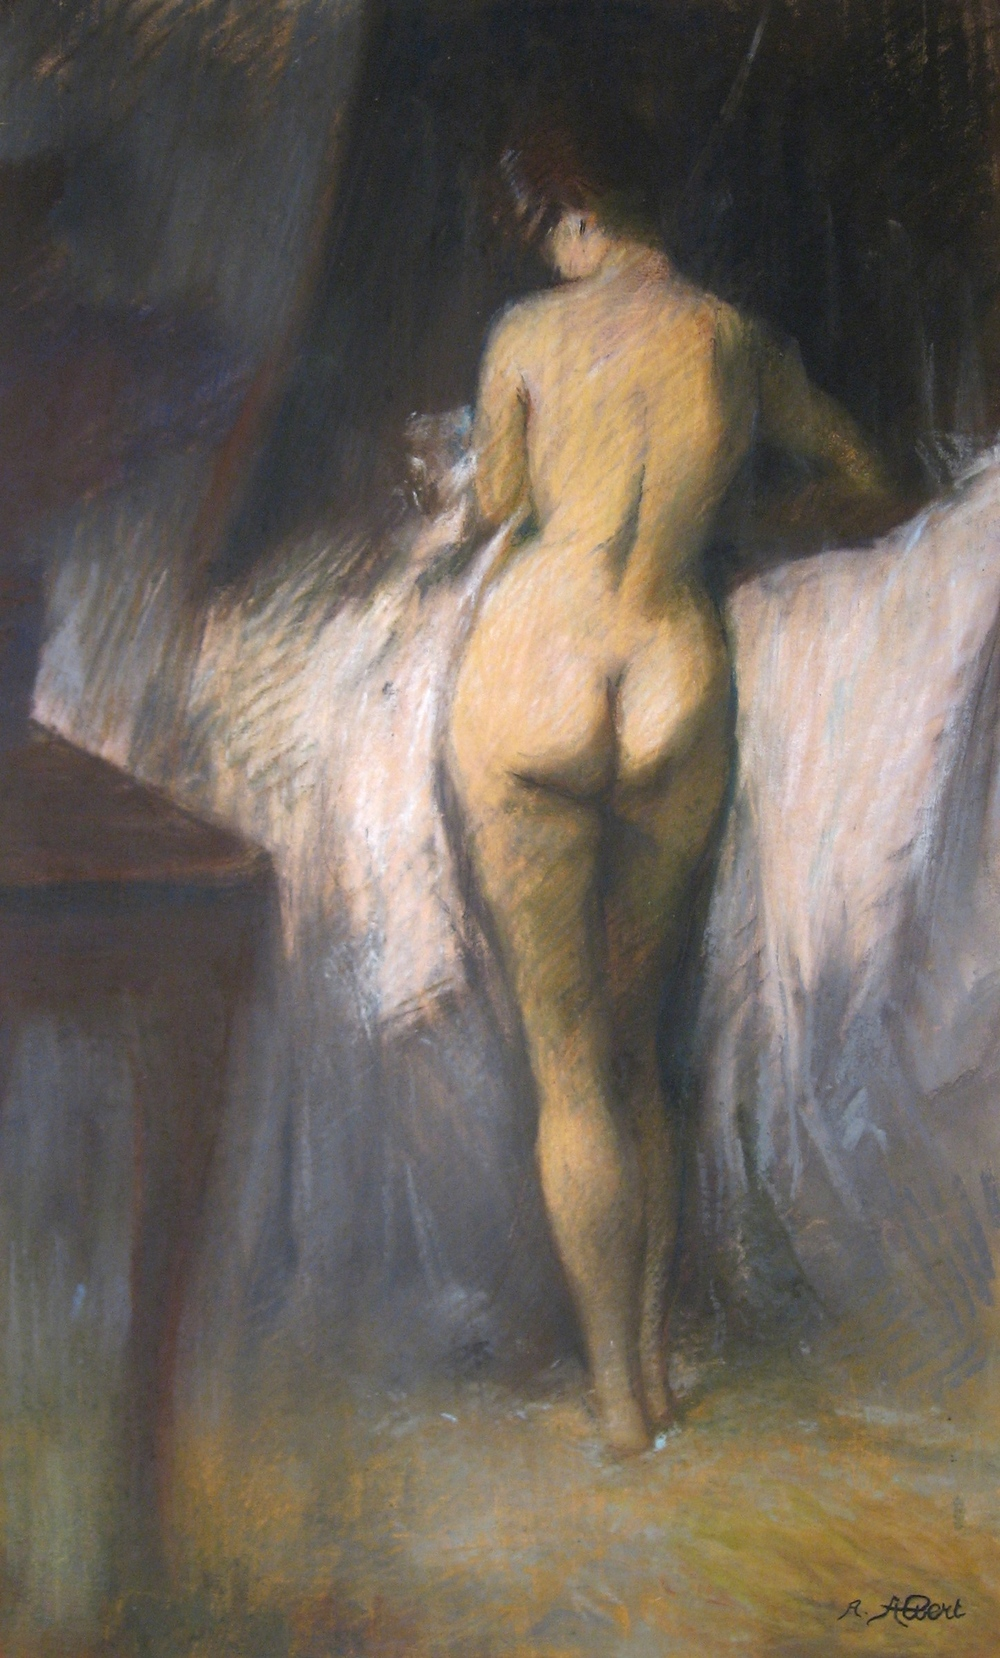 Title: Untitled Year: c. 1885 Medium: Pastel with traces of graphite on paper  Image size: 14 x 23